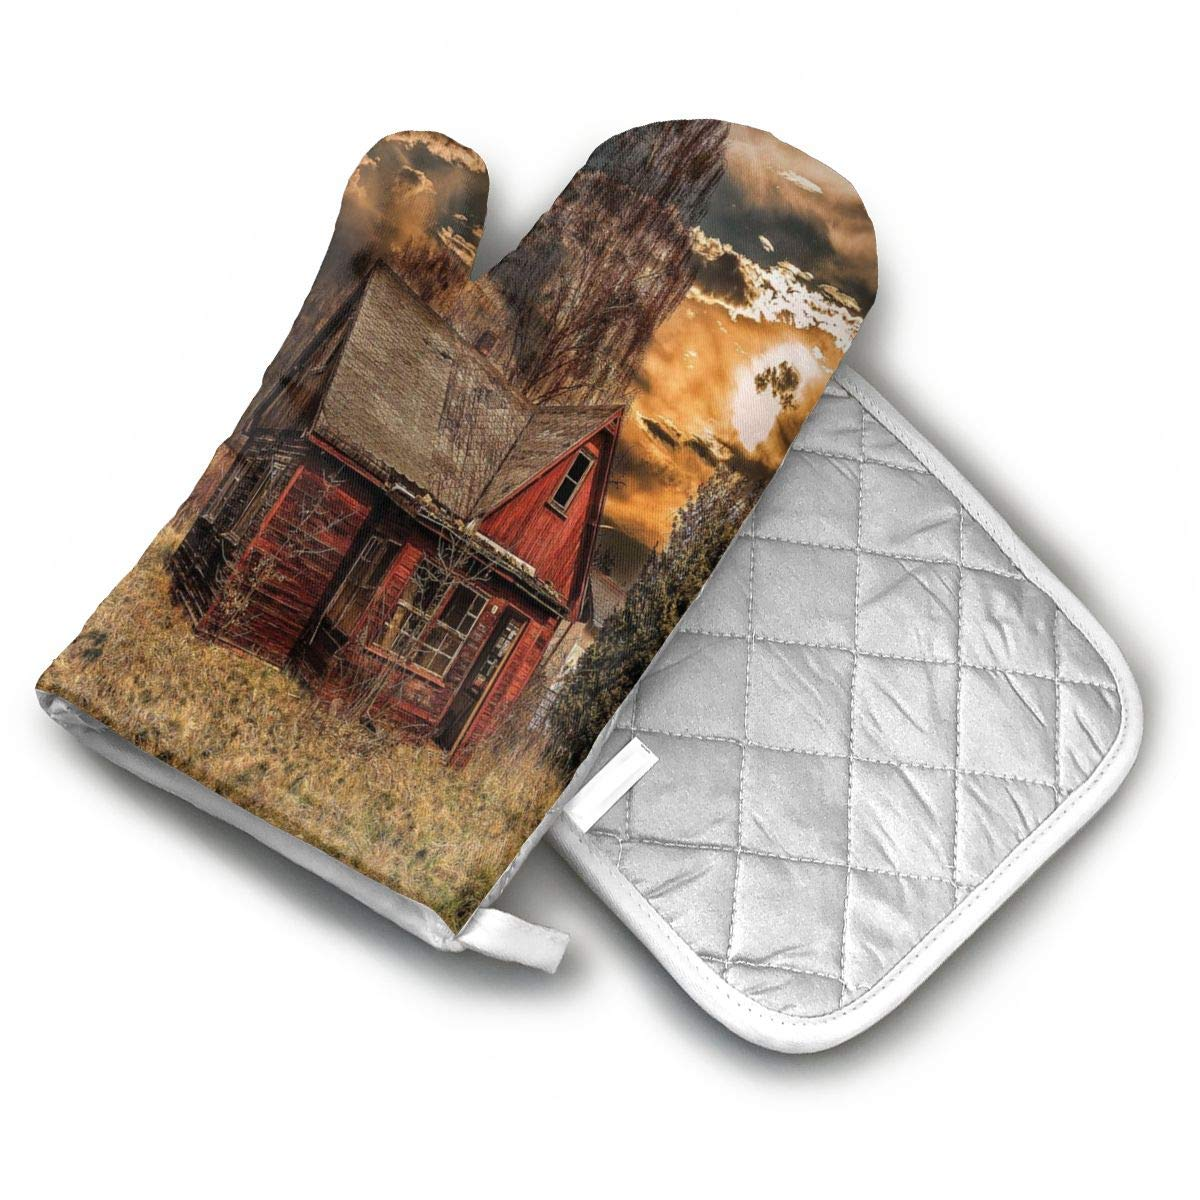 AISDHAJKSD Scary Horror Movie Themed Abandoned House in Premium Terylene/Nylon Oven Mitts and Pot Mat,Pot Mat/Hot Pads, Heat Resistant Gloves BBQ Kitchen